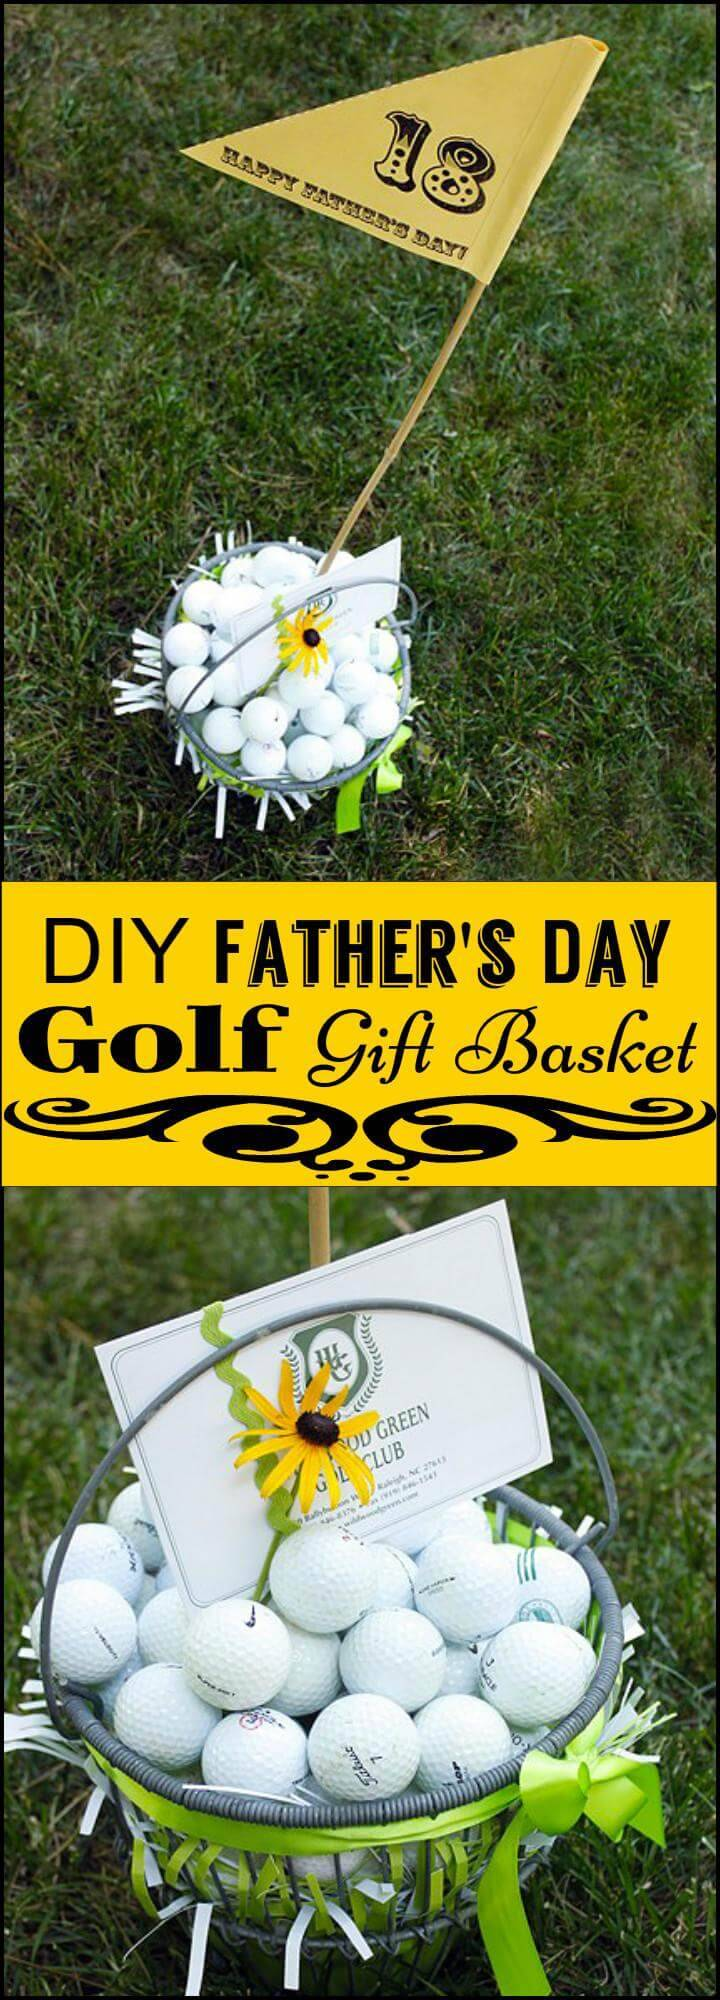 DIY Father's Day Golf Gift Basket